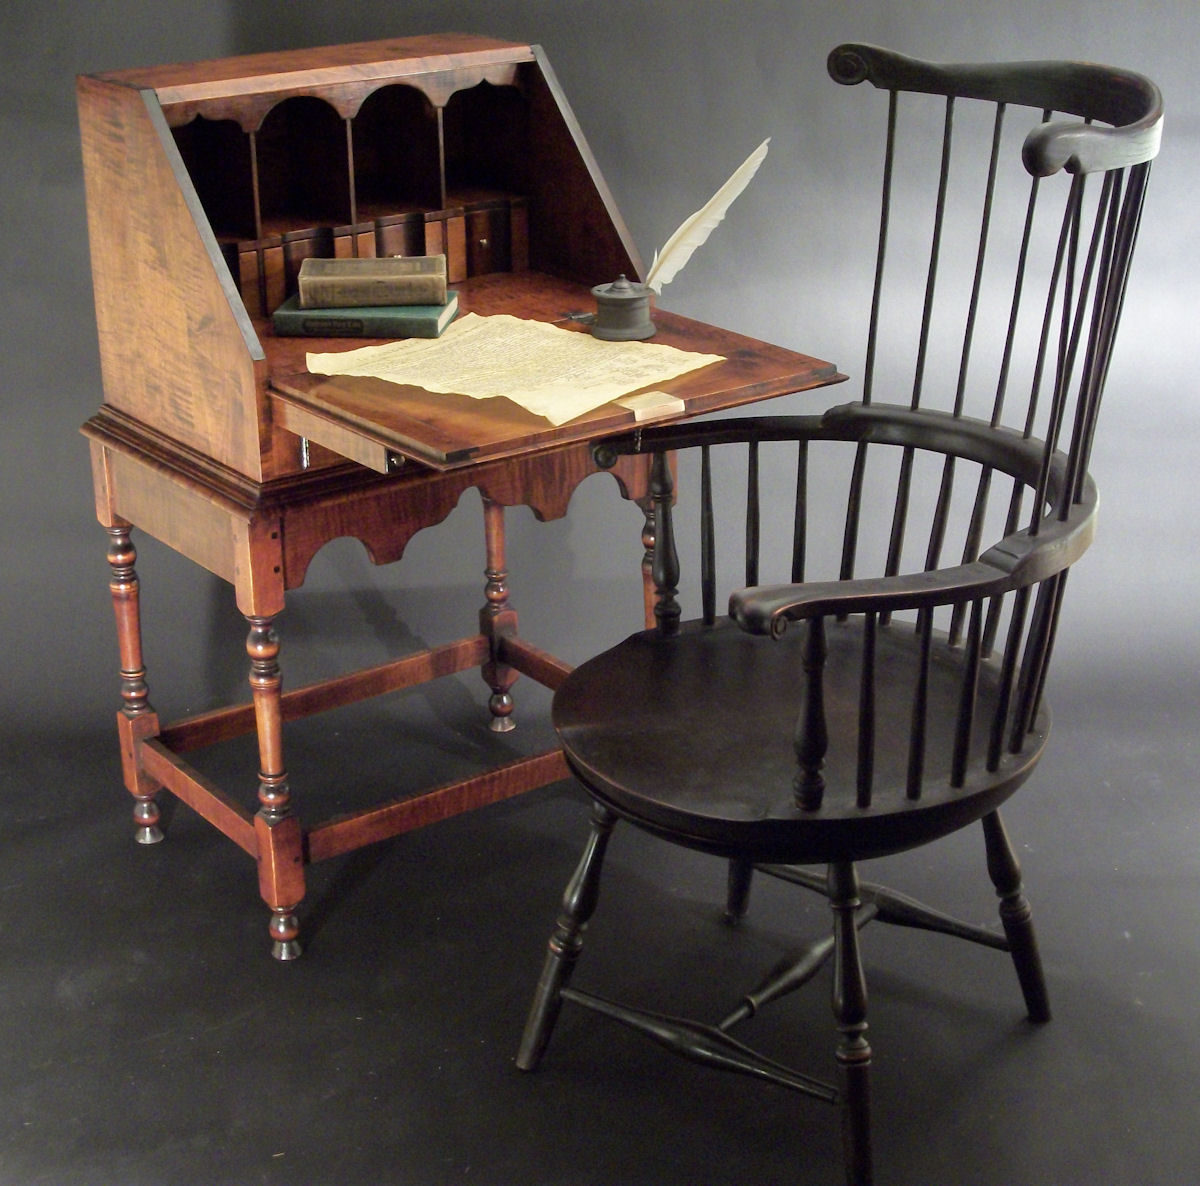 swivel chair inventor zero gravity office desk thomas jefferson invented the and first tablet s3 amazonaws com